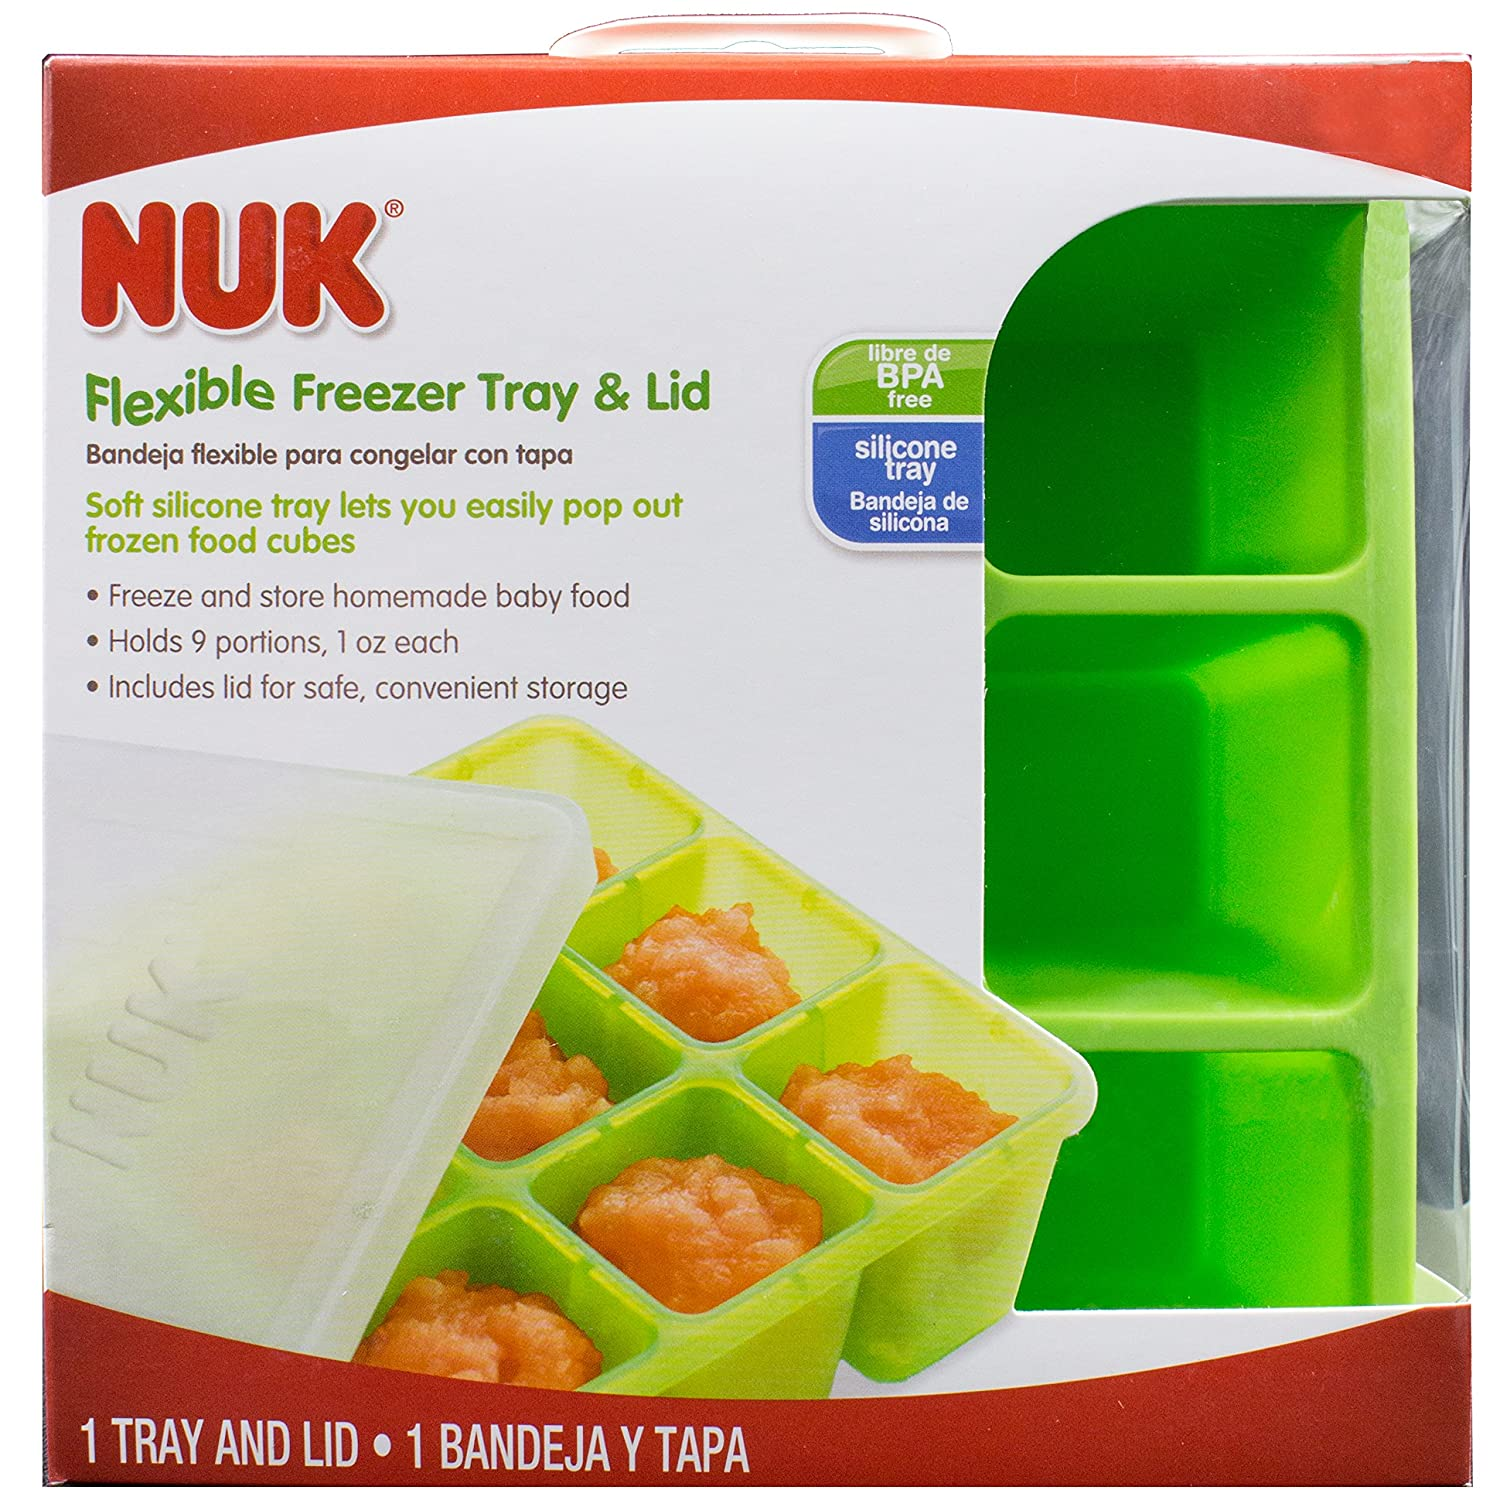 Amazon.com : NUK Homemade Baby Food Flexible Freezer Tray and Lid Set : Baby